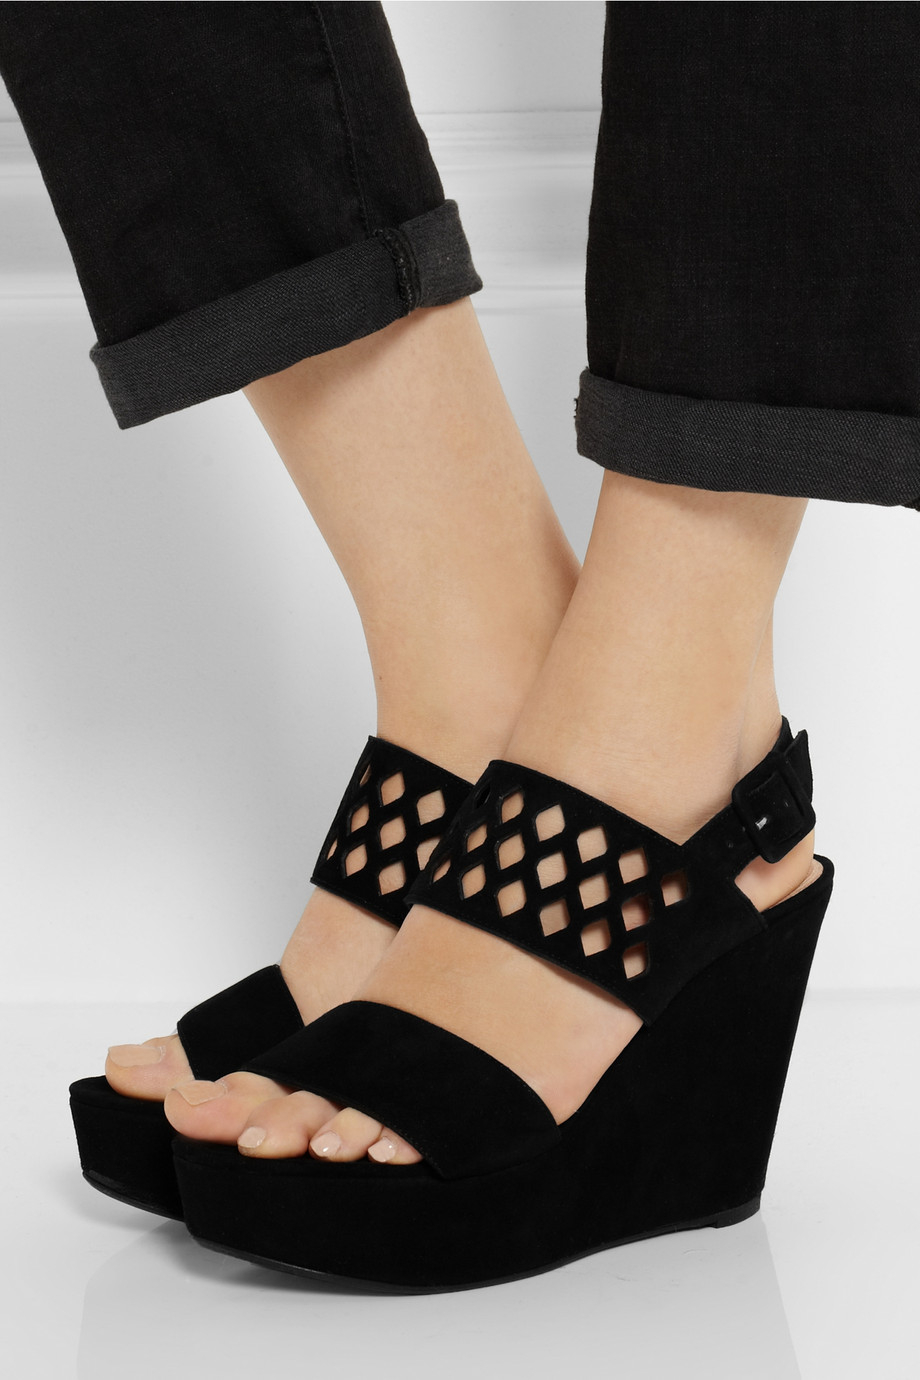 cheap new styles Robert Clergerie Suede Cutout Sandals sale popular M629ucY